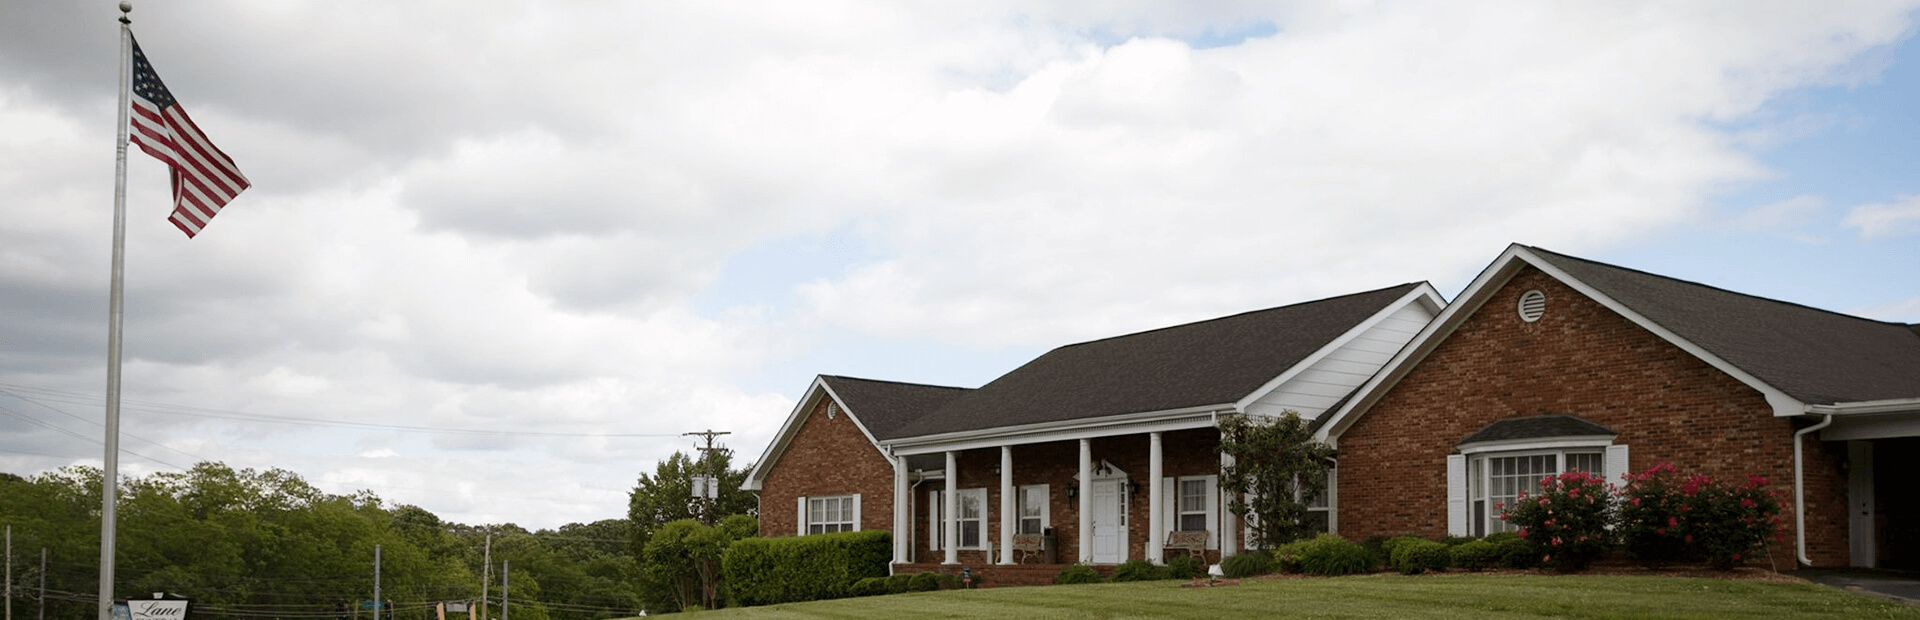 Lane Funeral Home - South Crest Chapel in Rossville, GA